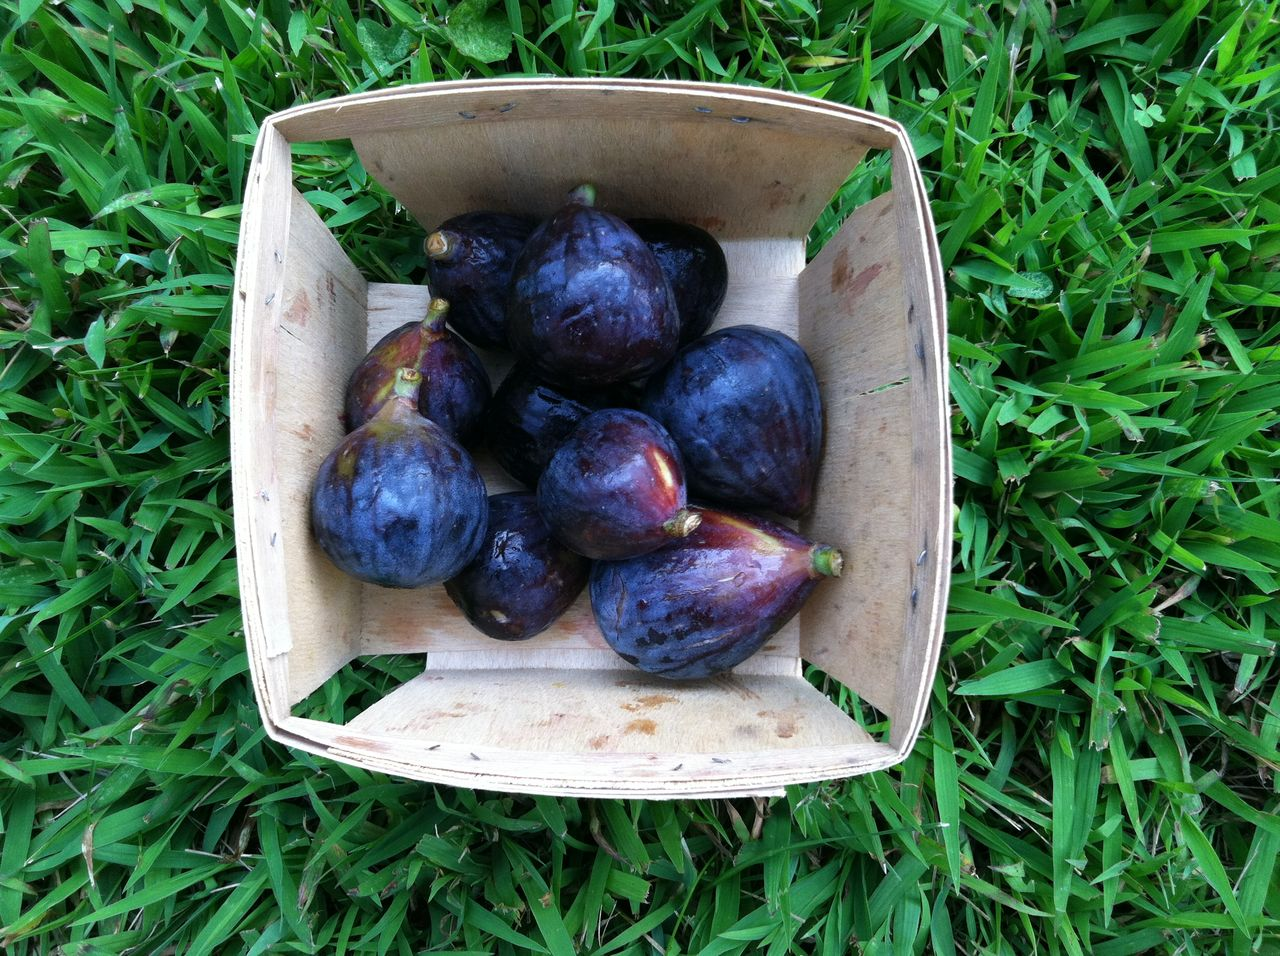 Directly above shot of figs in container on field